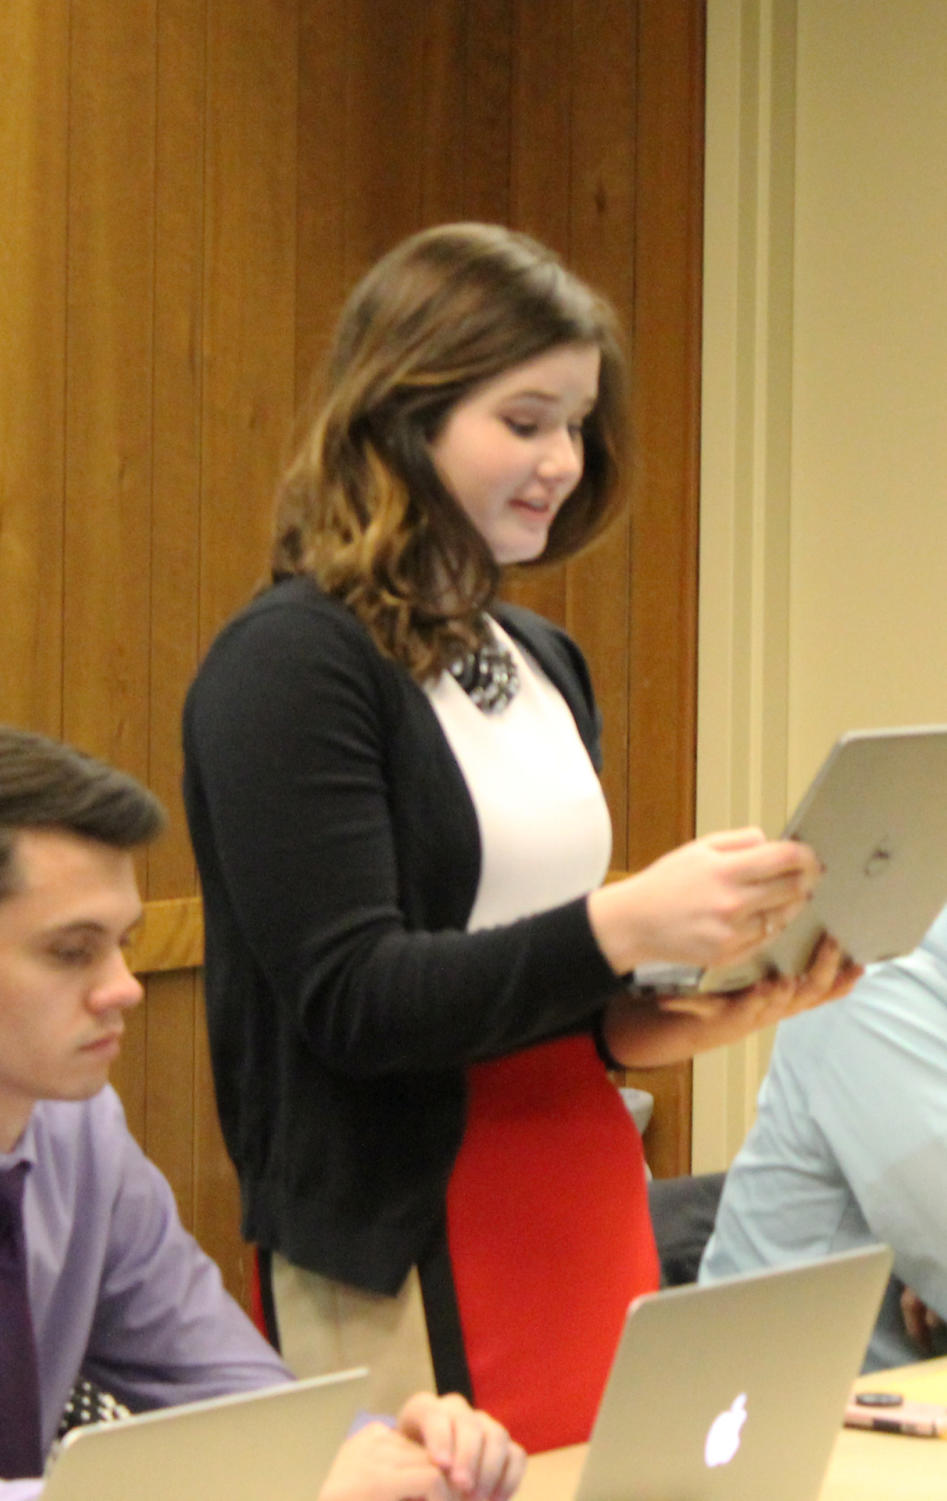 Student Government Association Director of Academic Affairs Madison Lynn discusses feedback given at faculty senate on legislation. Macomb Mayor Mike Inman answers questions from the legislative body